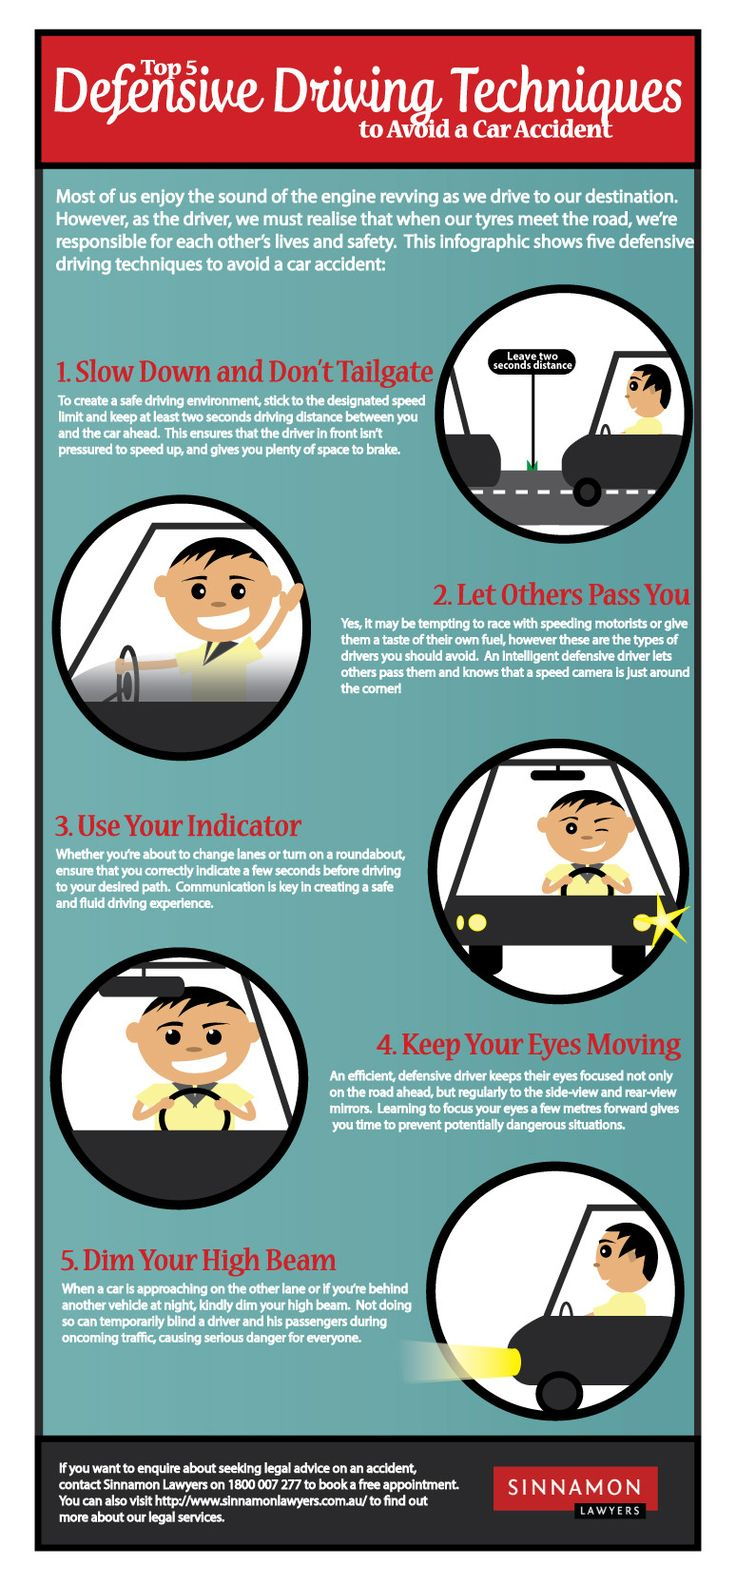 Top 5 Defensive Driving Techniques to Avoid a Car Accident   #infographic #Driving #CarAccidents